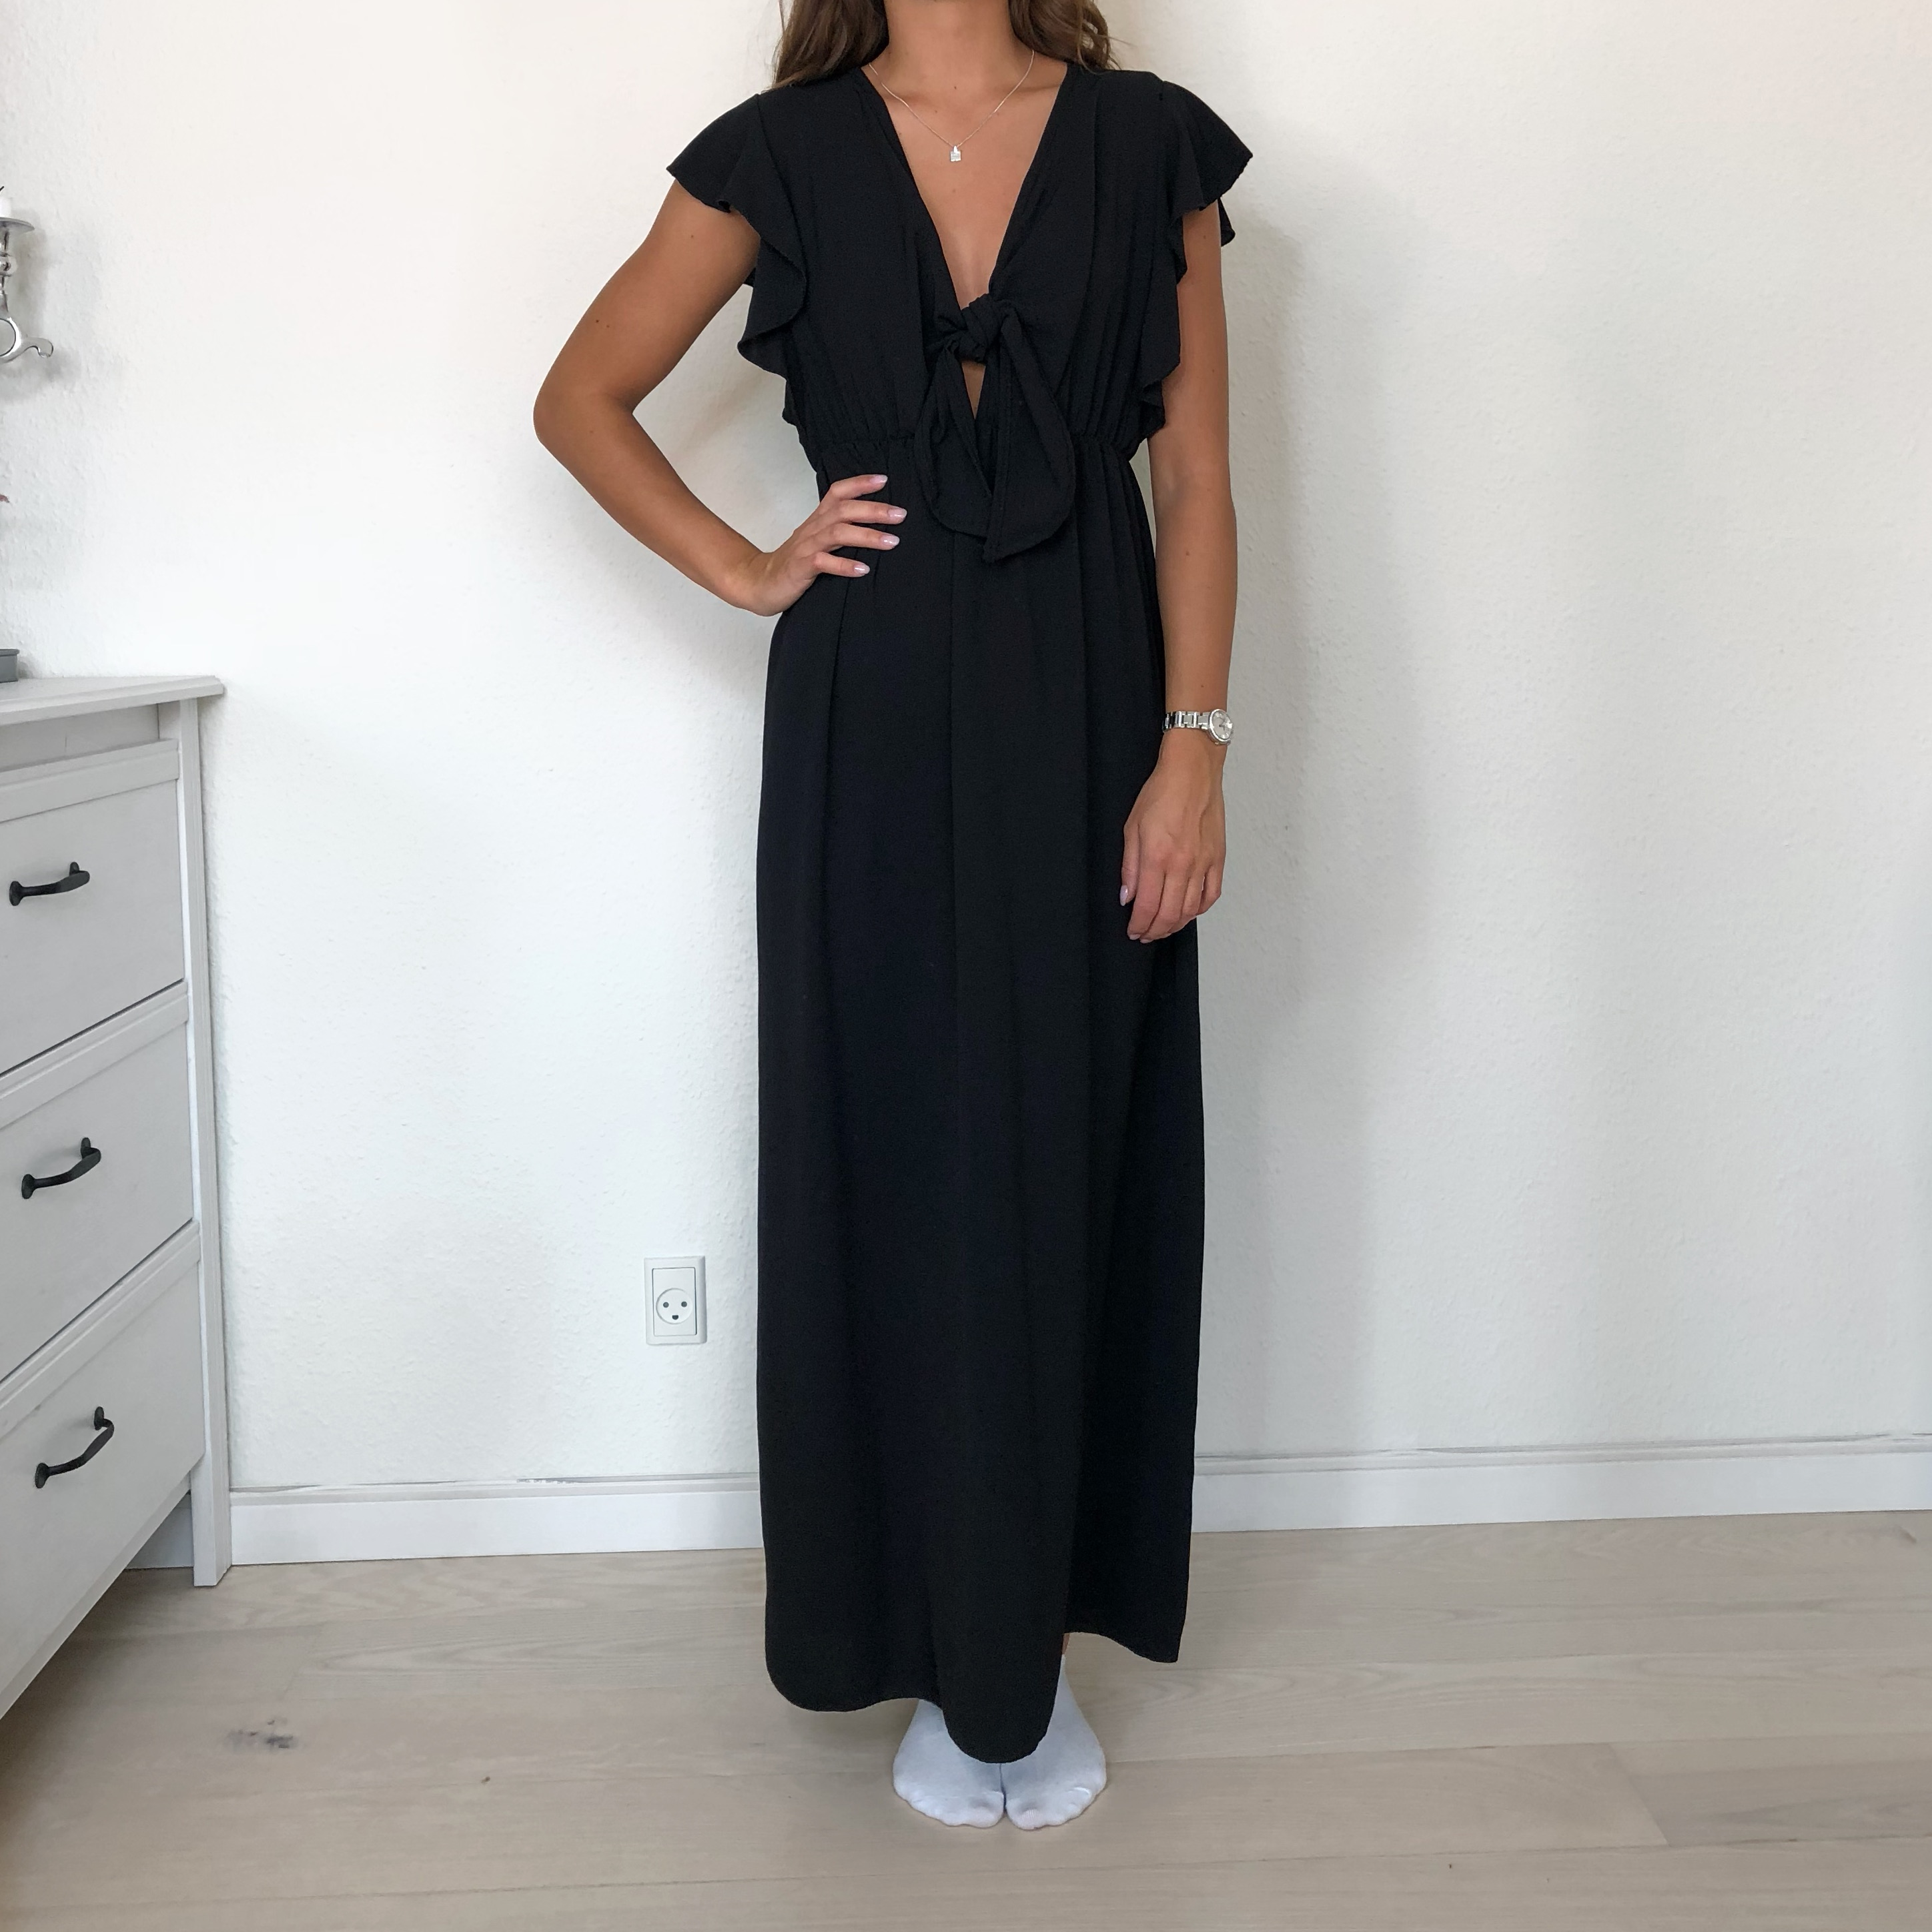 Leonora Dress - Sort